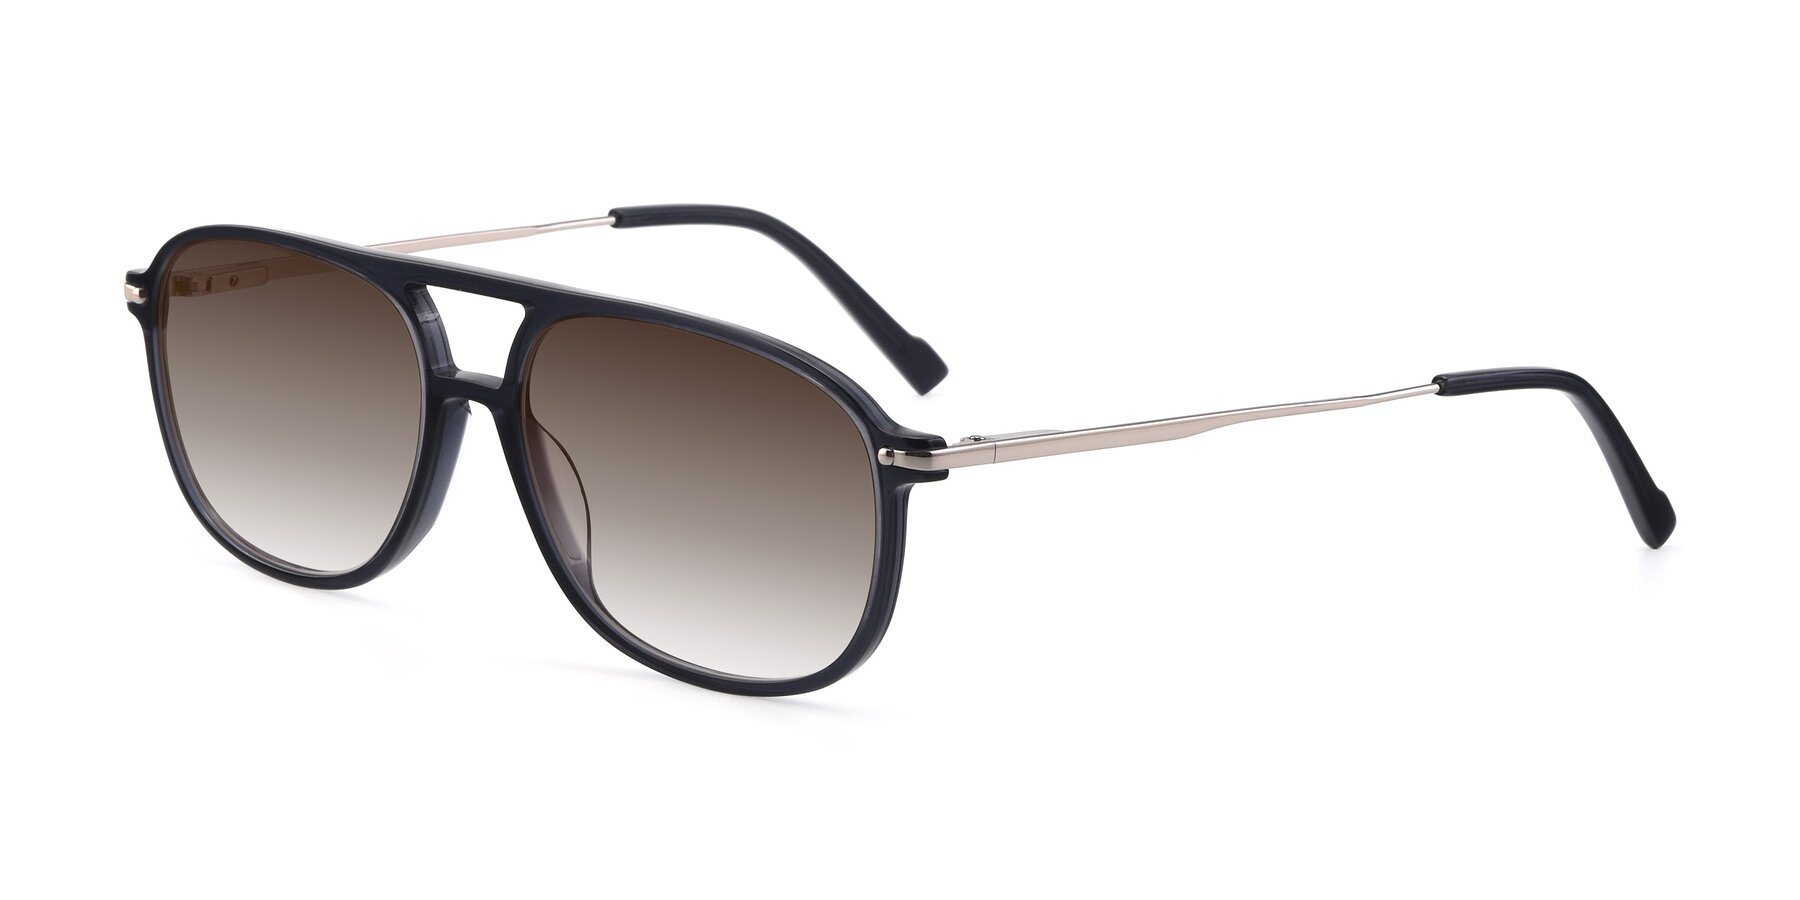 Angle of 17580 in Dark Bluish Gray with Brown Gradient Lenses